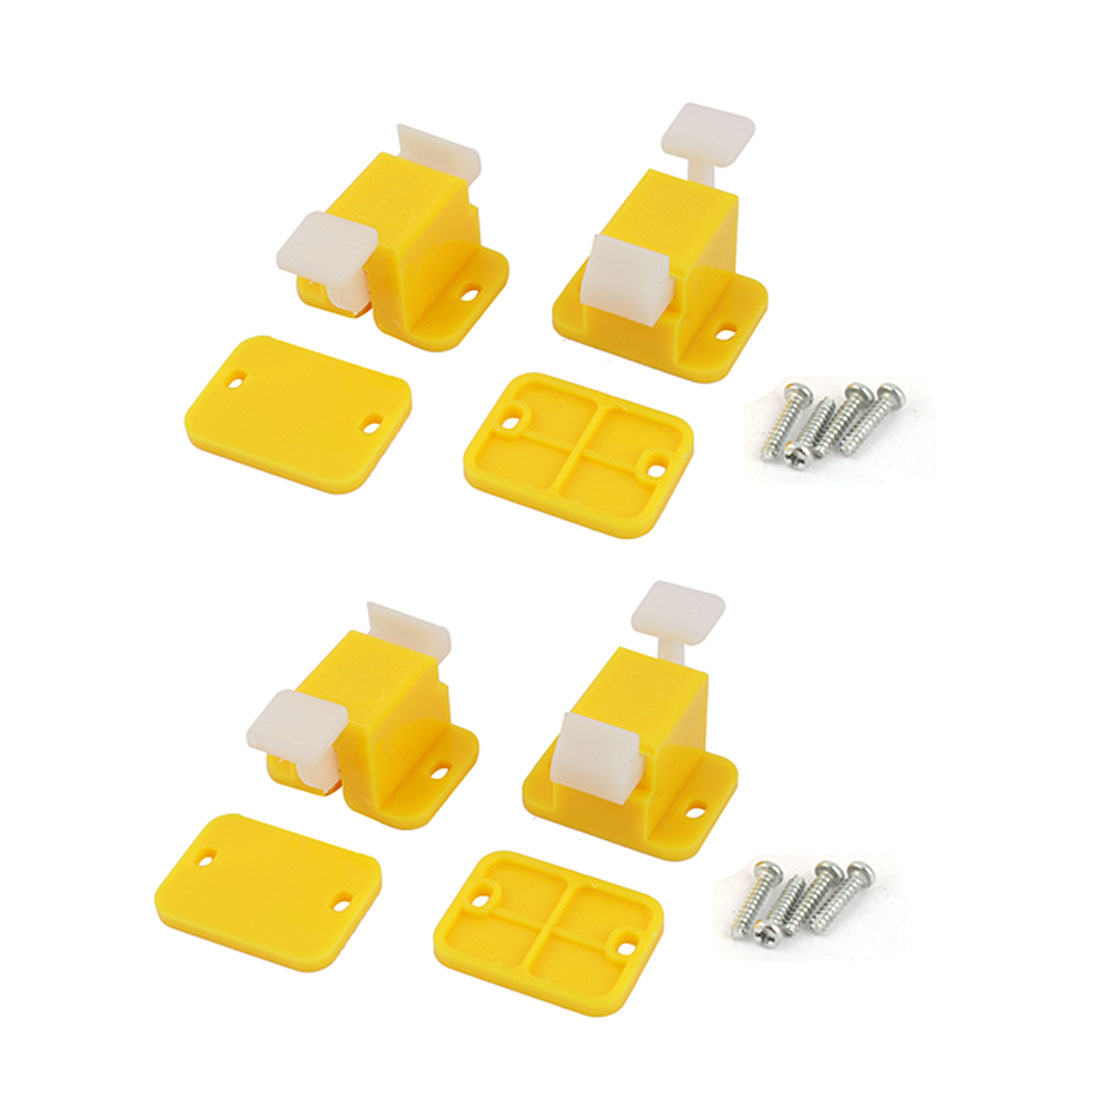 4 Pcs Plastic Prototype Test Fixture Jig Yellow White for PCB Board